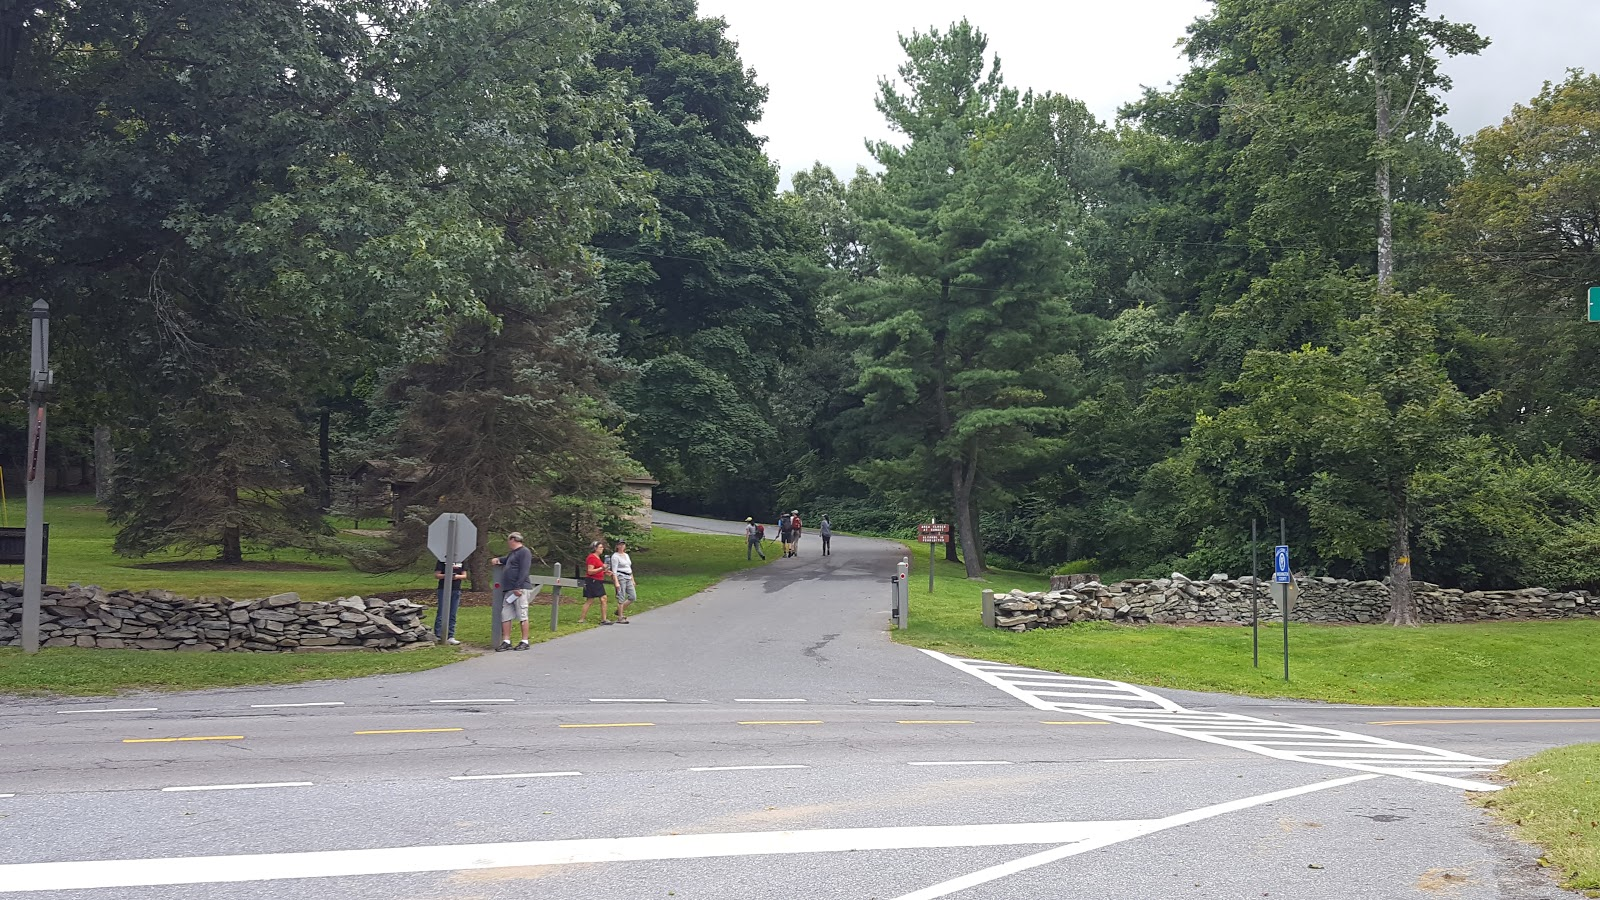 While heading toward the trail stop by